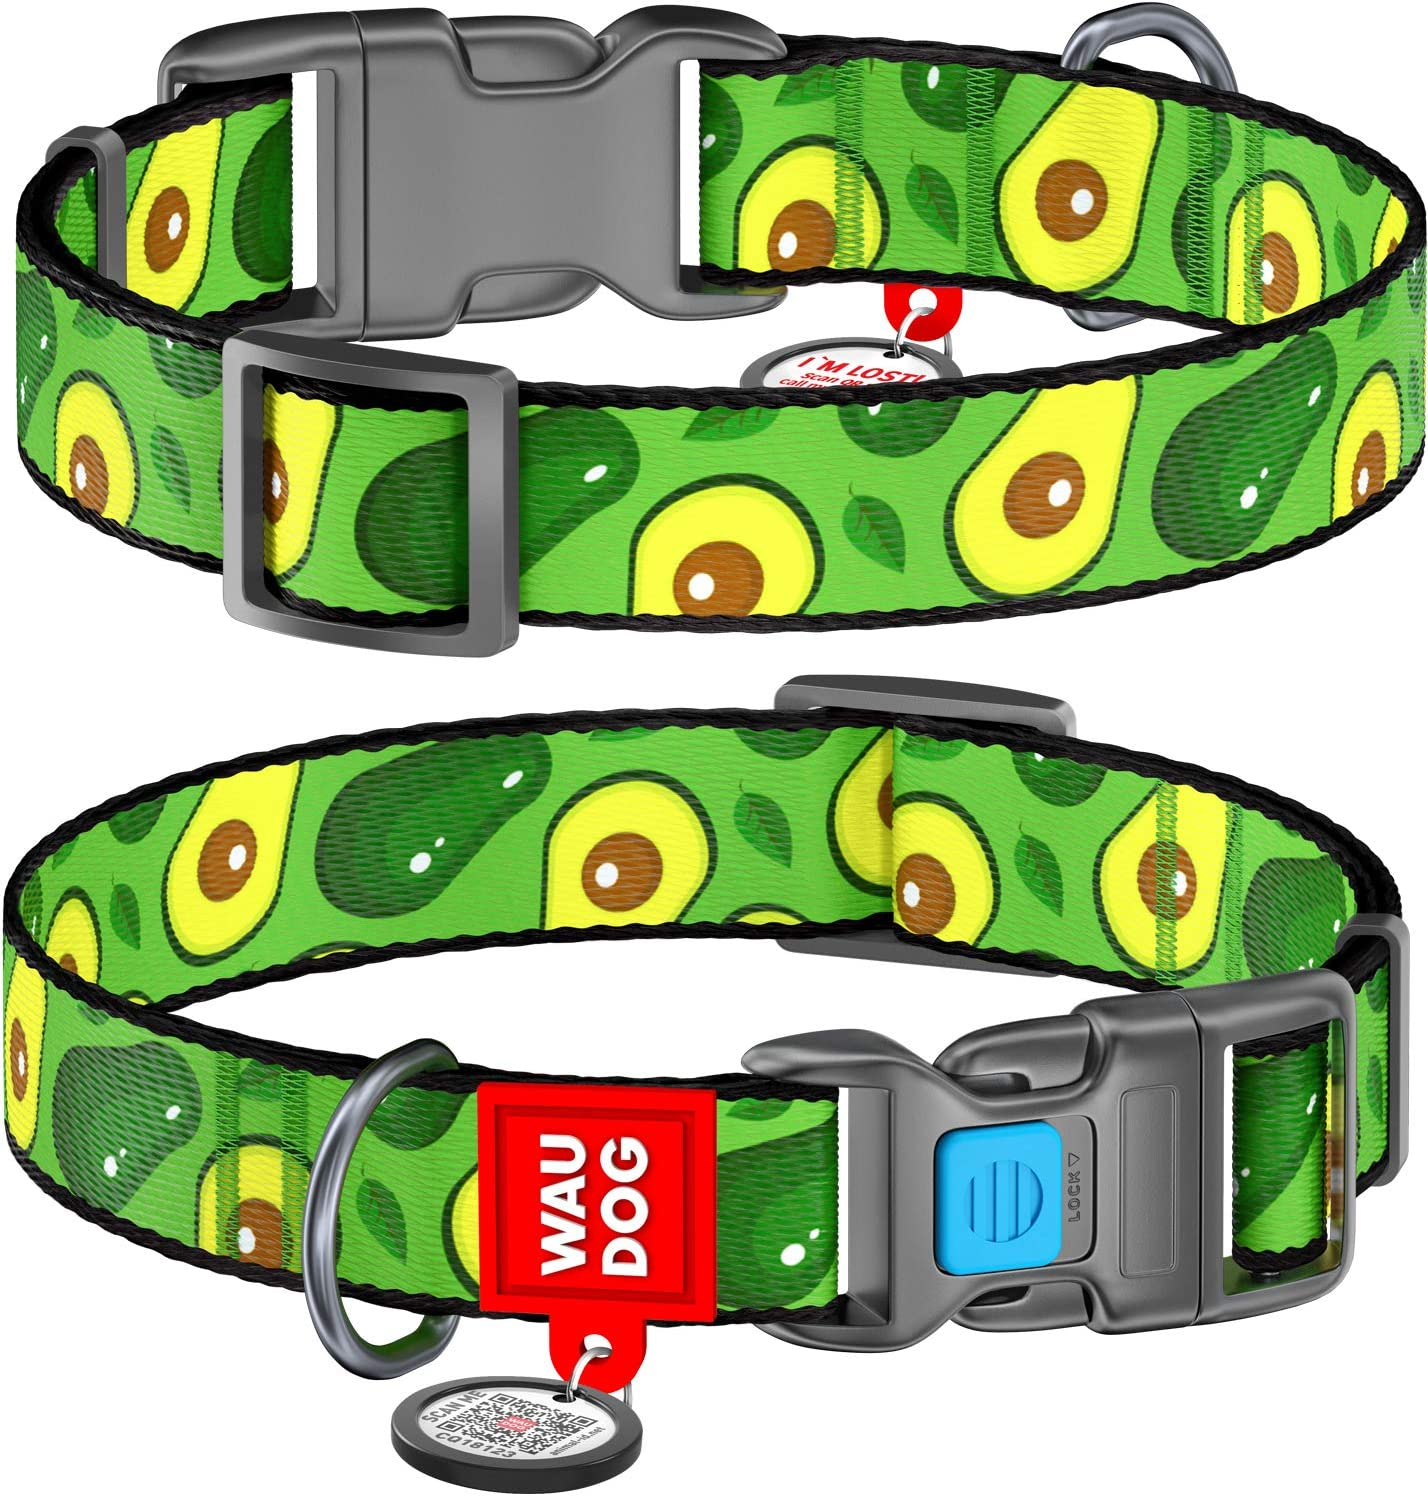 Adjustable Miami Mall Puppy Collar for Small Dogs Award-winning store - Dog Boy